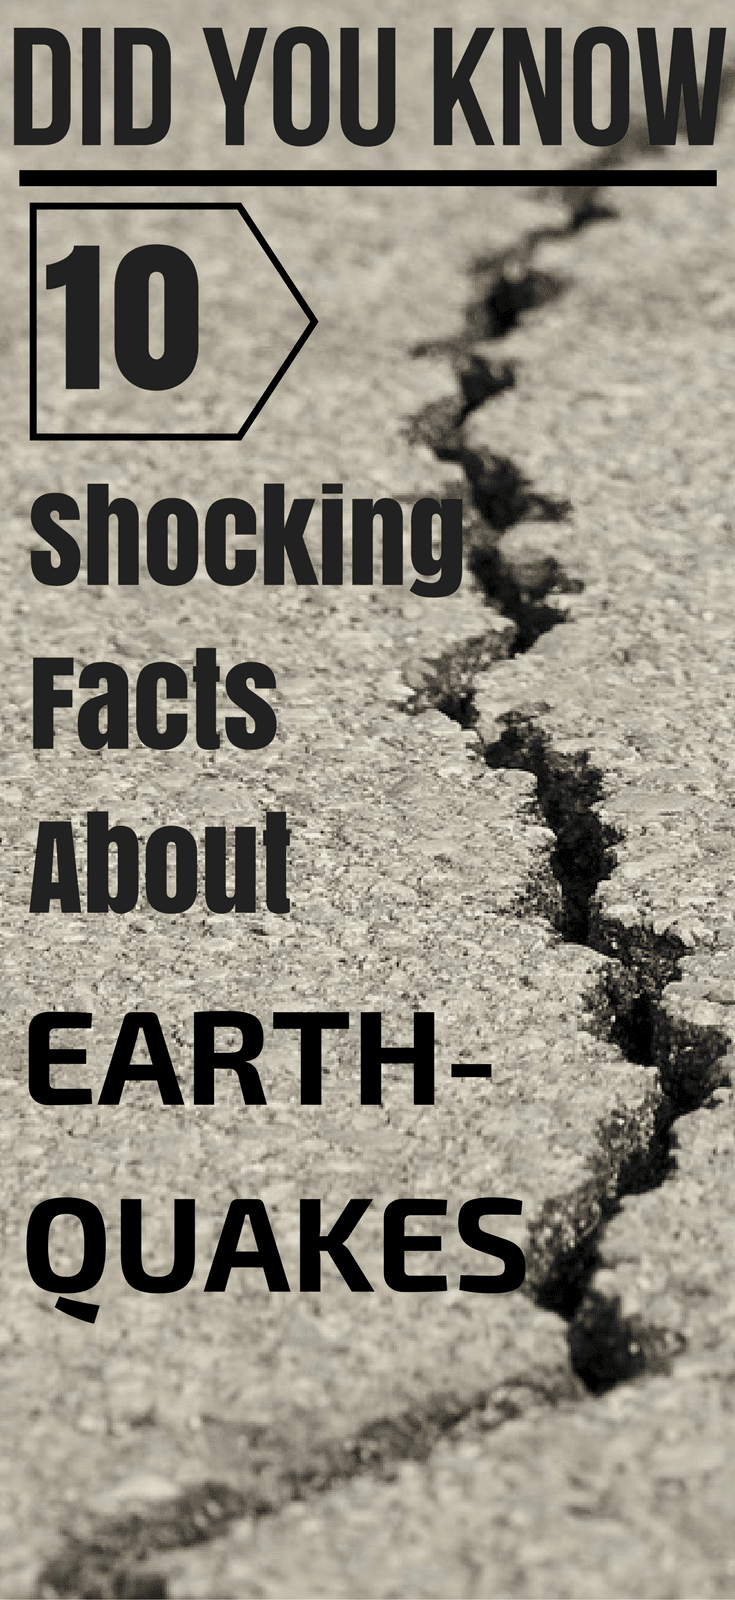 Did You Know These 10 Shocking Facts About Earthquakes?